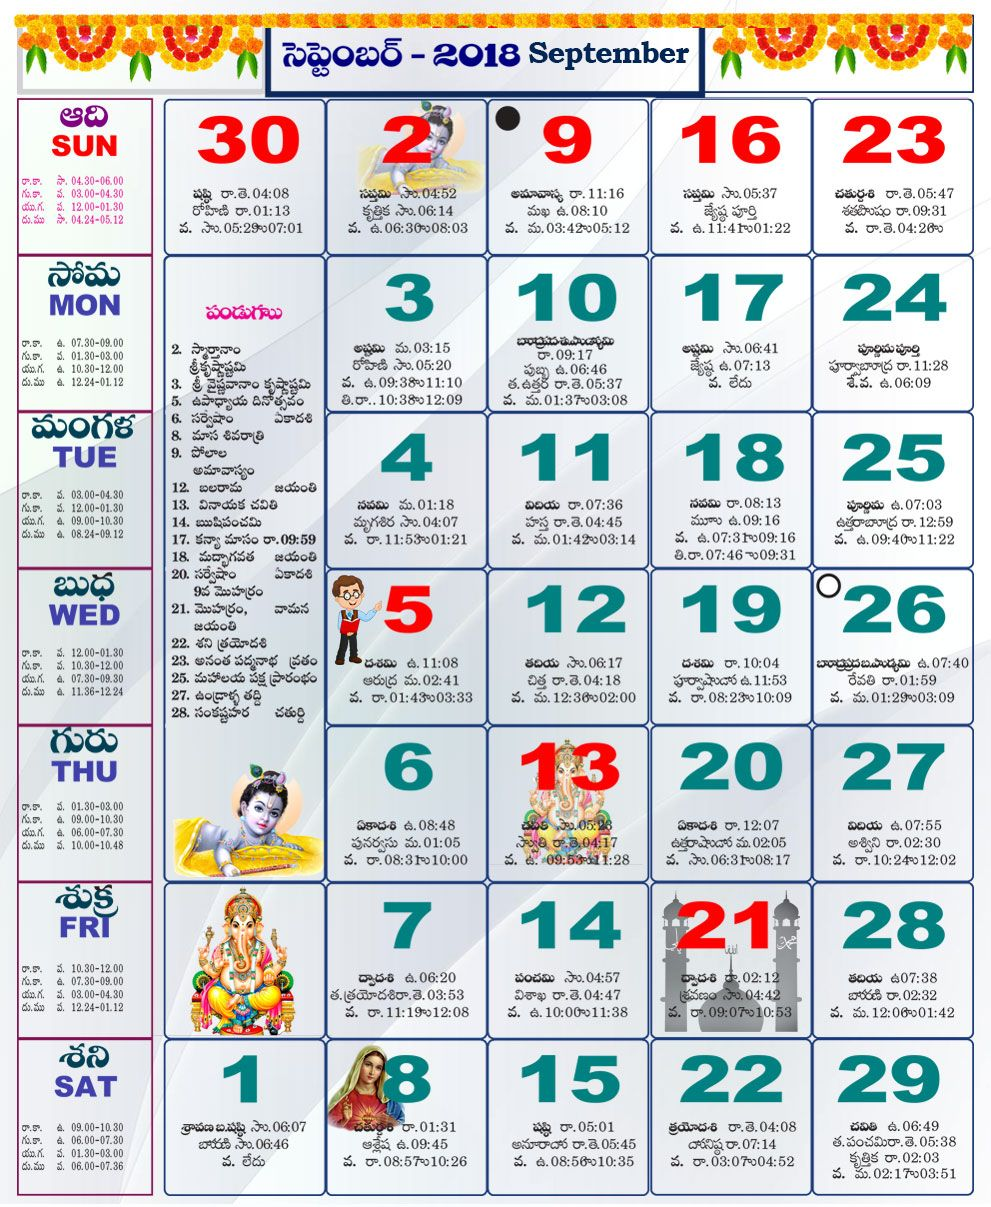 Printable September 2018 Tamil Calendar With Holiday And Festival